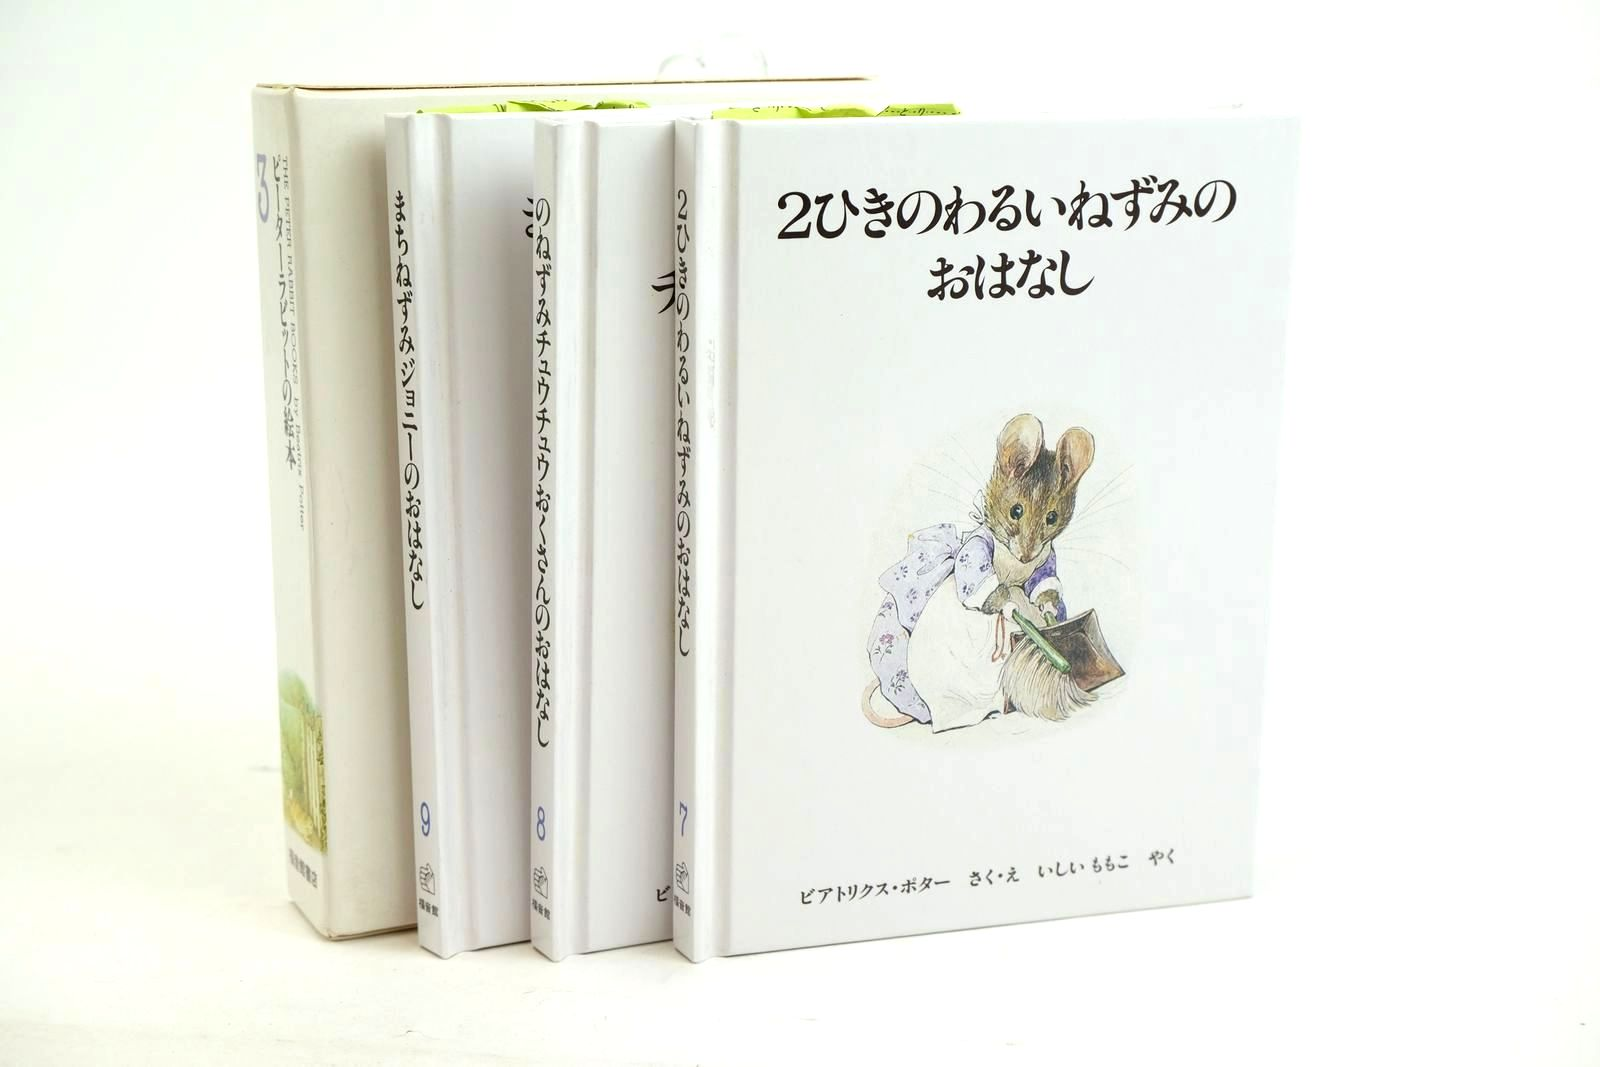 Photo of THE PETER RABBIT BOOKS 3 (JAPANESE) written by Potter, Beatrix illustrated by Potter, Beatrix published by Fukuinkan-Shoten (STOCK CODE: 1319898)  for sale by Stella & Rose's Books